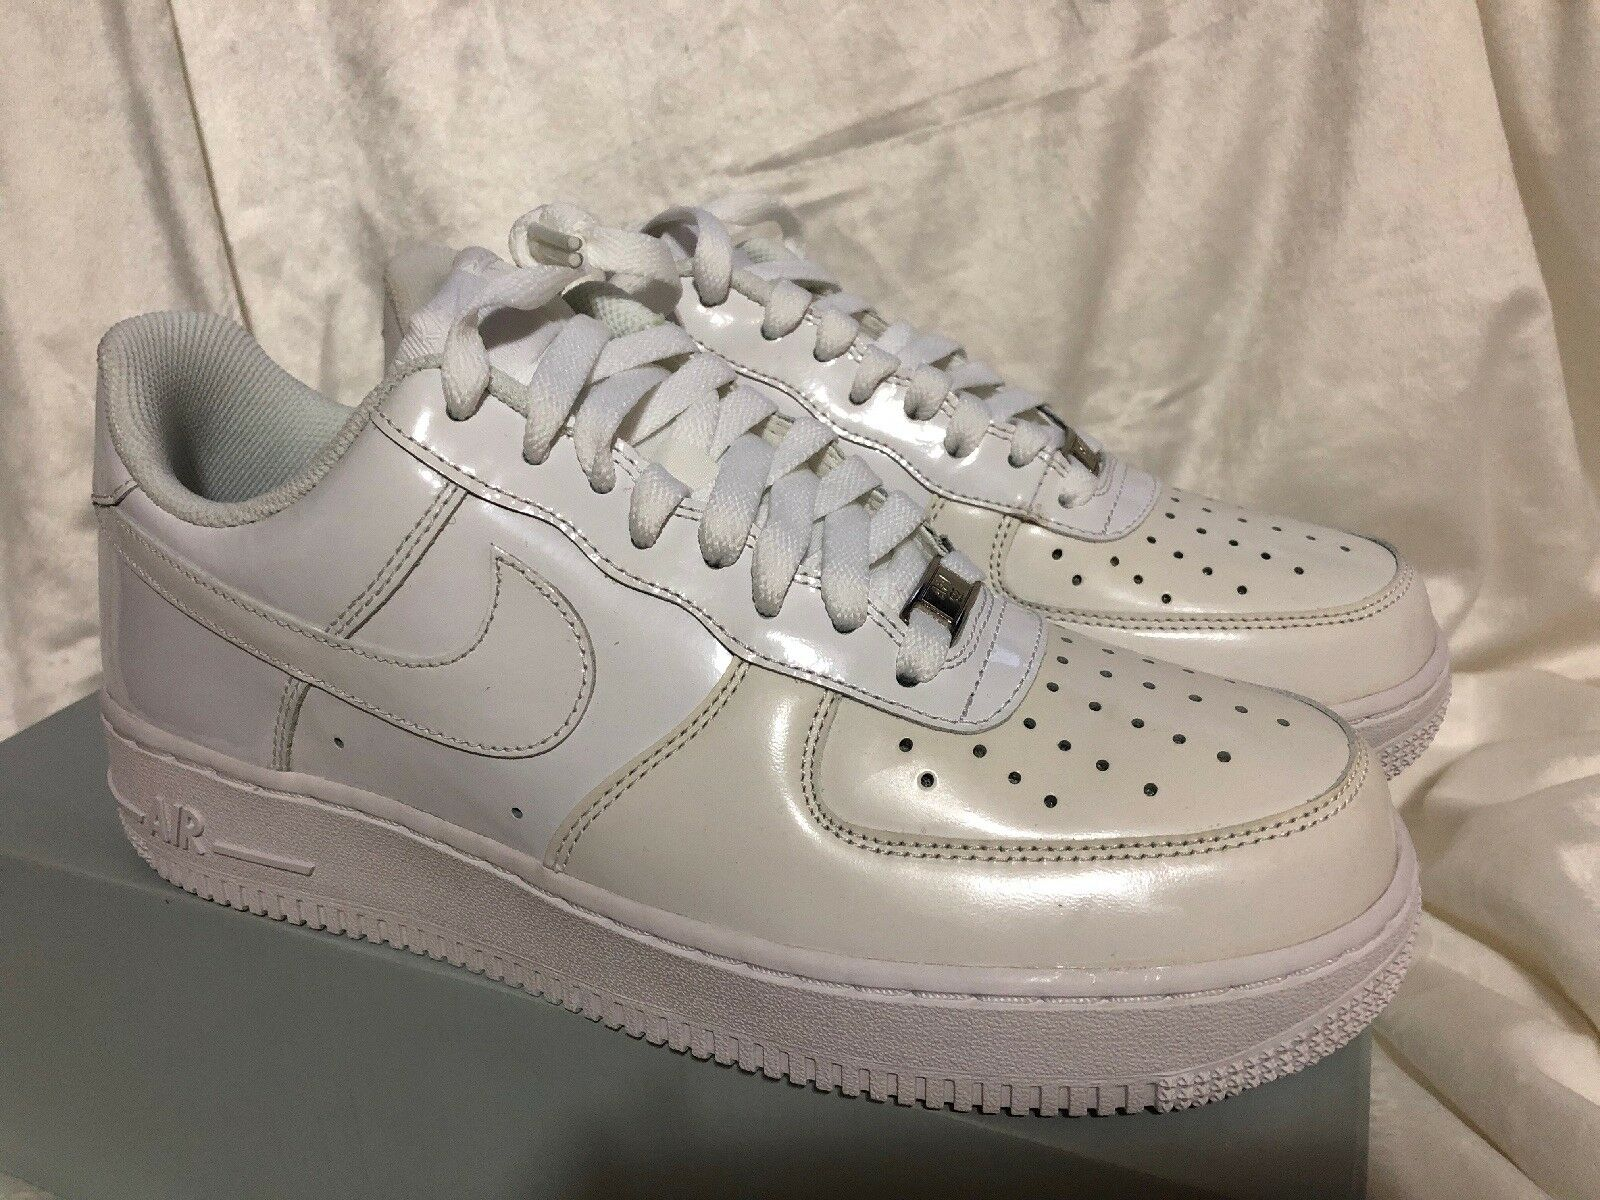 New in box deadstock Nike Air Force 1 White Patent Leather 488298-122 Size 7.5